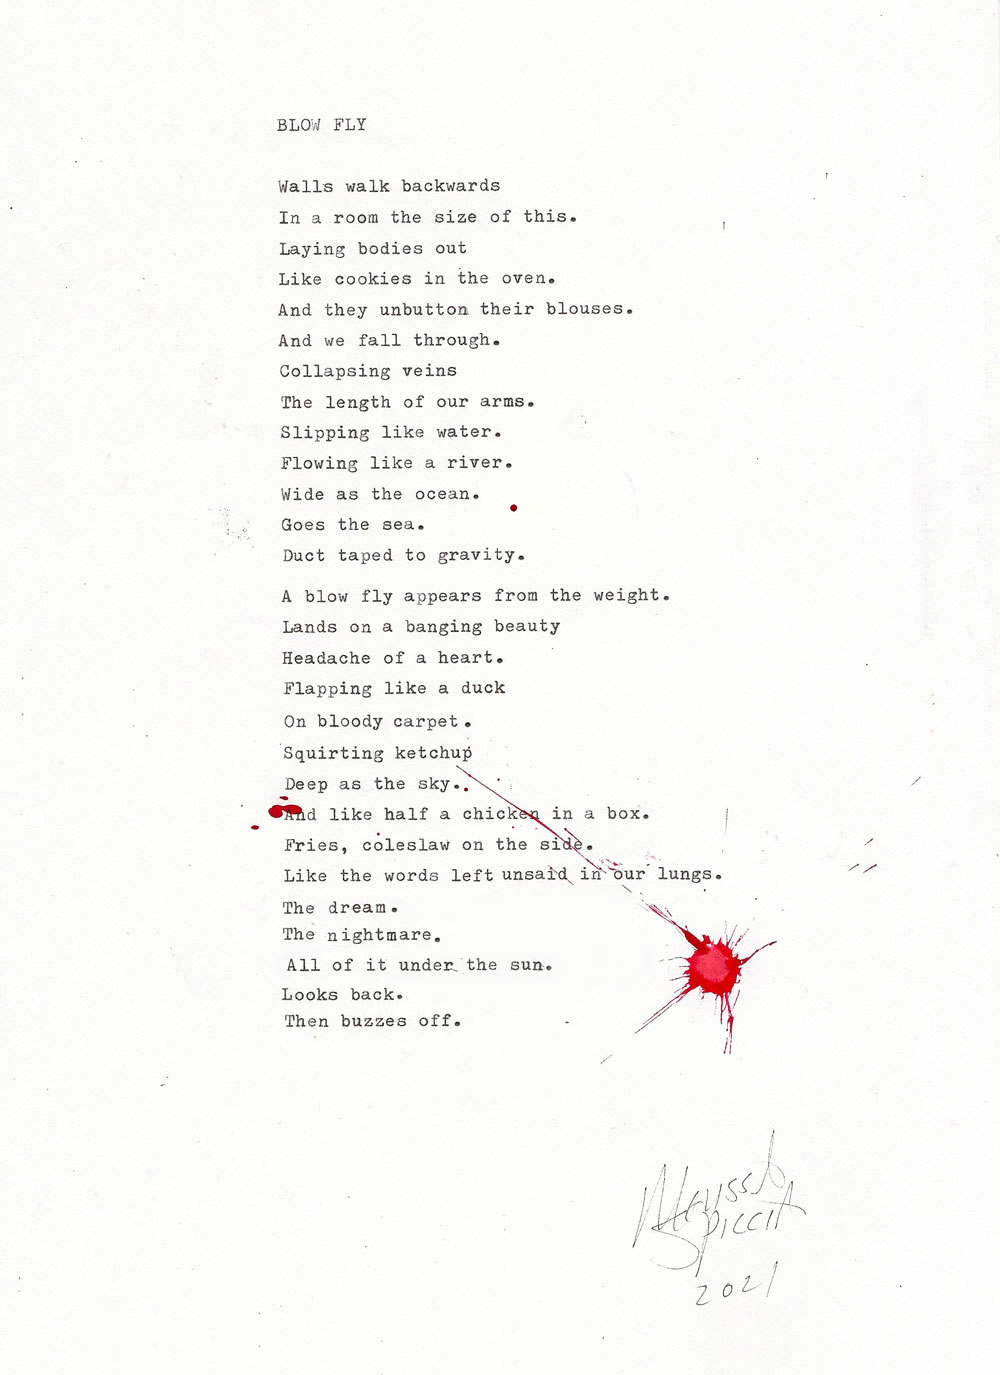 Melissa Spiccia   SEE FLOWERS IN HELL BLOW FLY POEM MELISSA SPICCIA